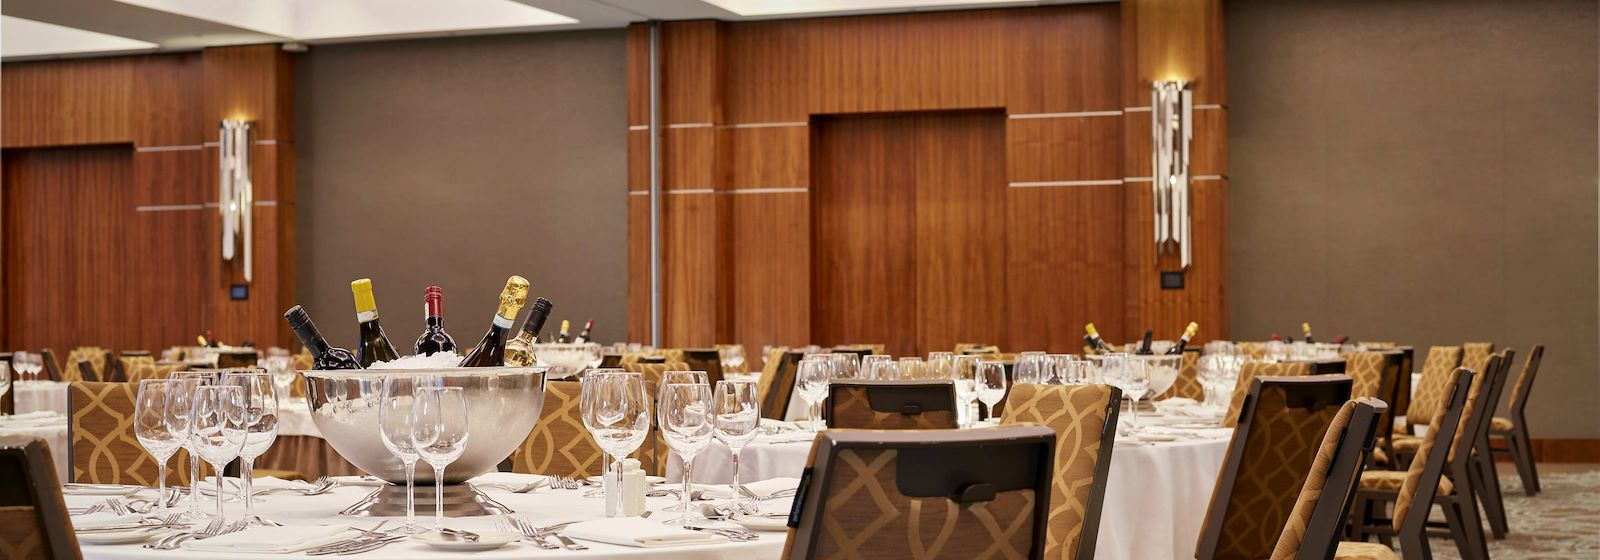 Sheraton Grand Hotel & Spa Edinburgh Event Spaces